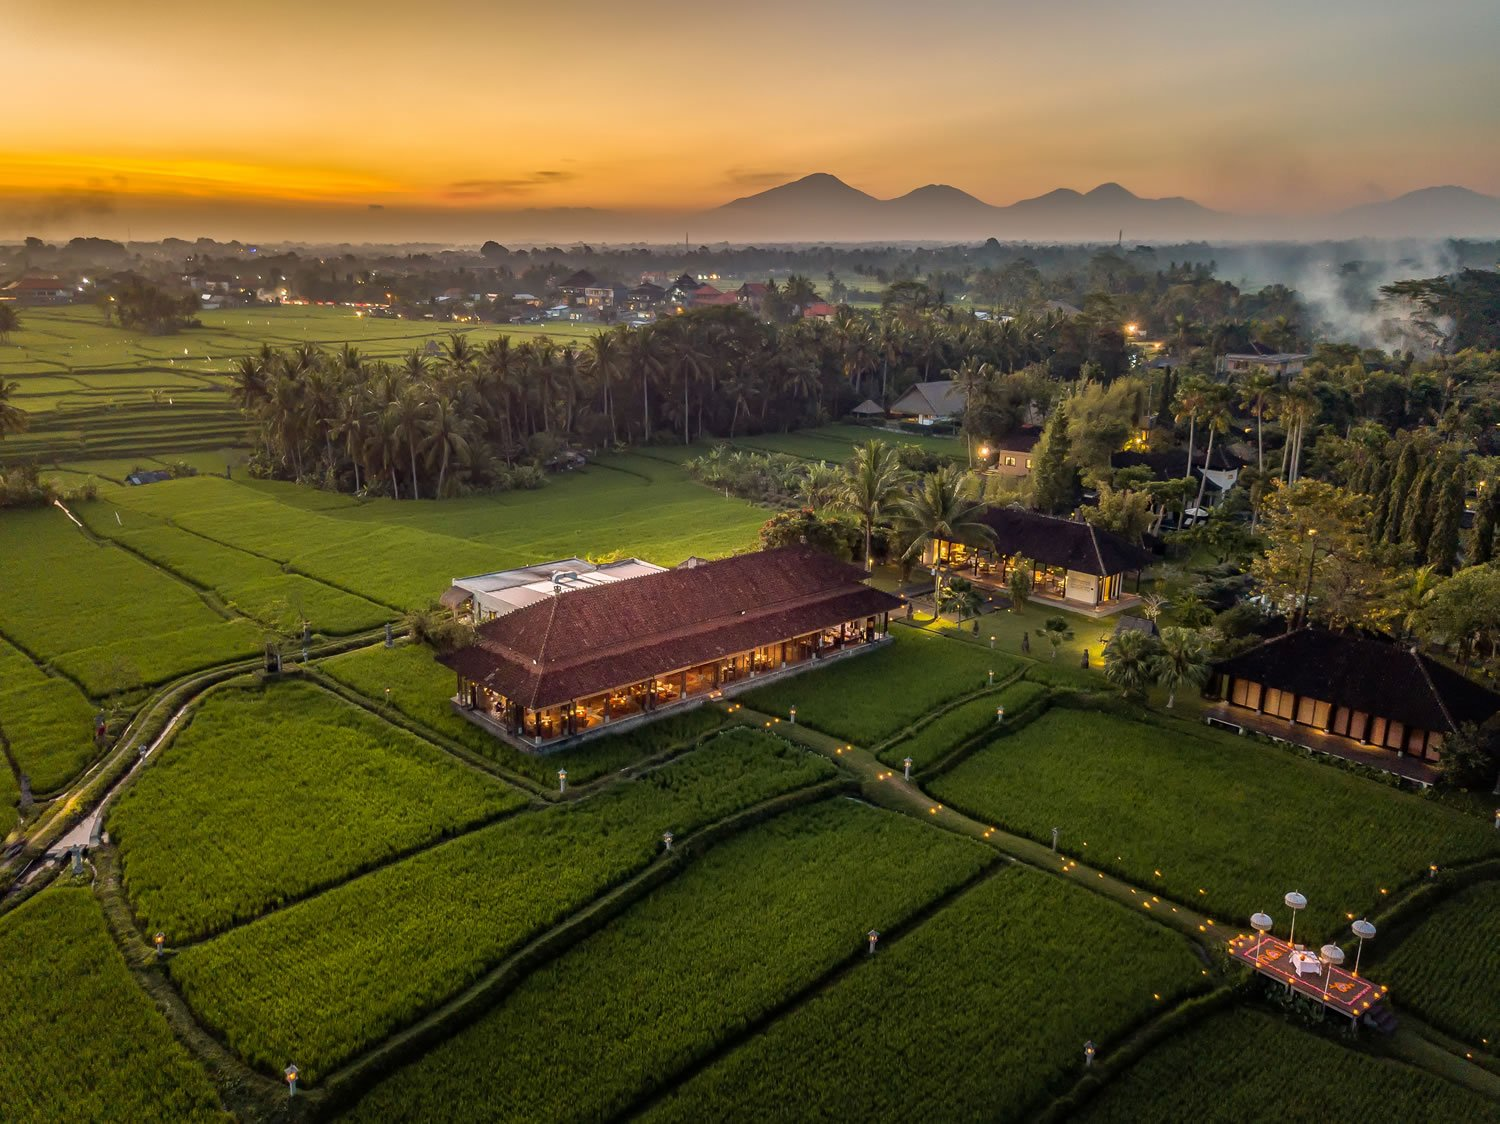 Review: Tanah Gajah, Bali - A Resort by Hadiprana - A charming, art-filled retreat amidst swaying rice fields. : Luxurylaunches